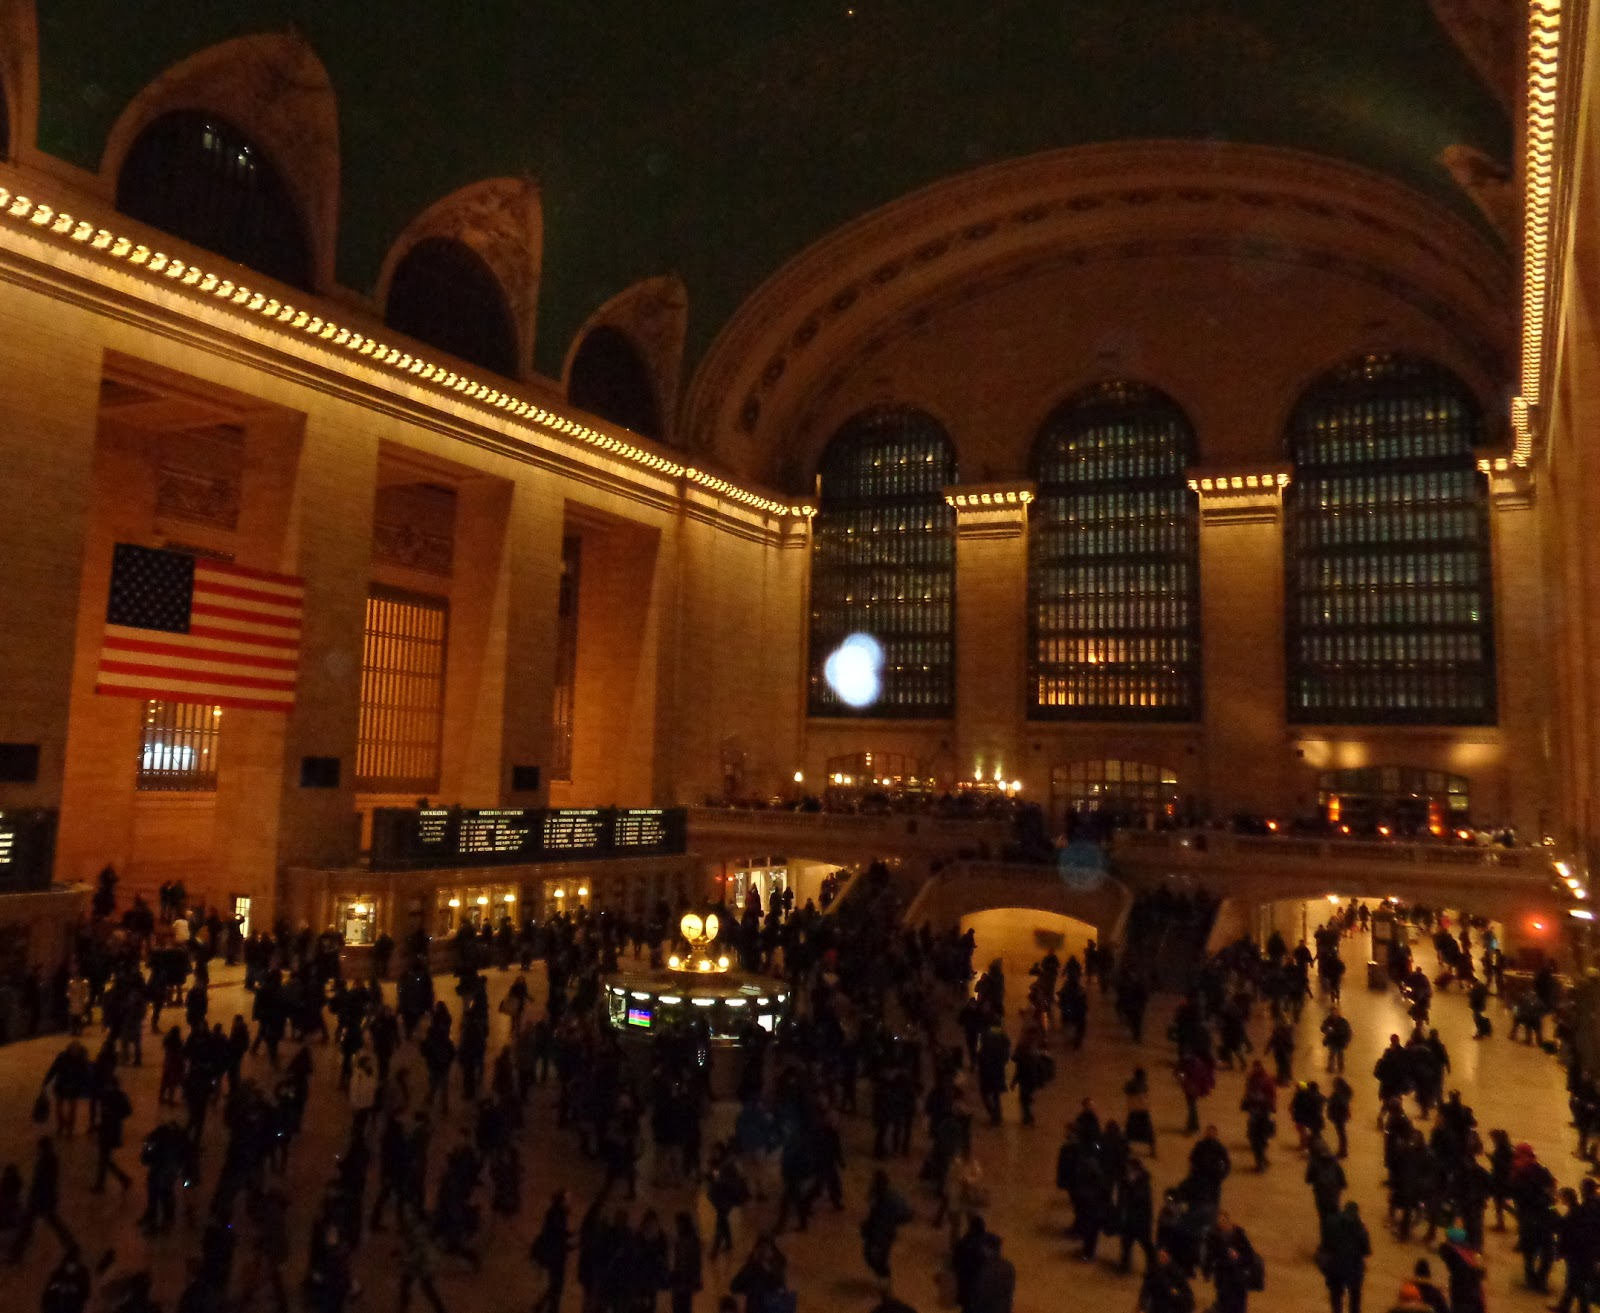 moving orb in Grand Central Station